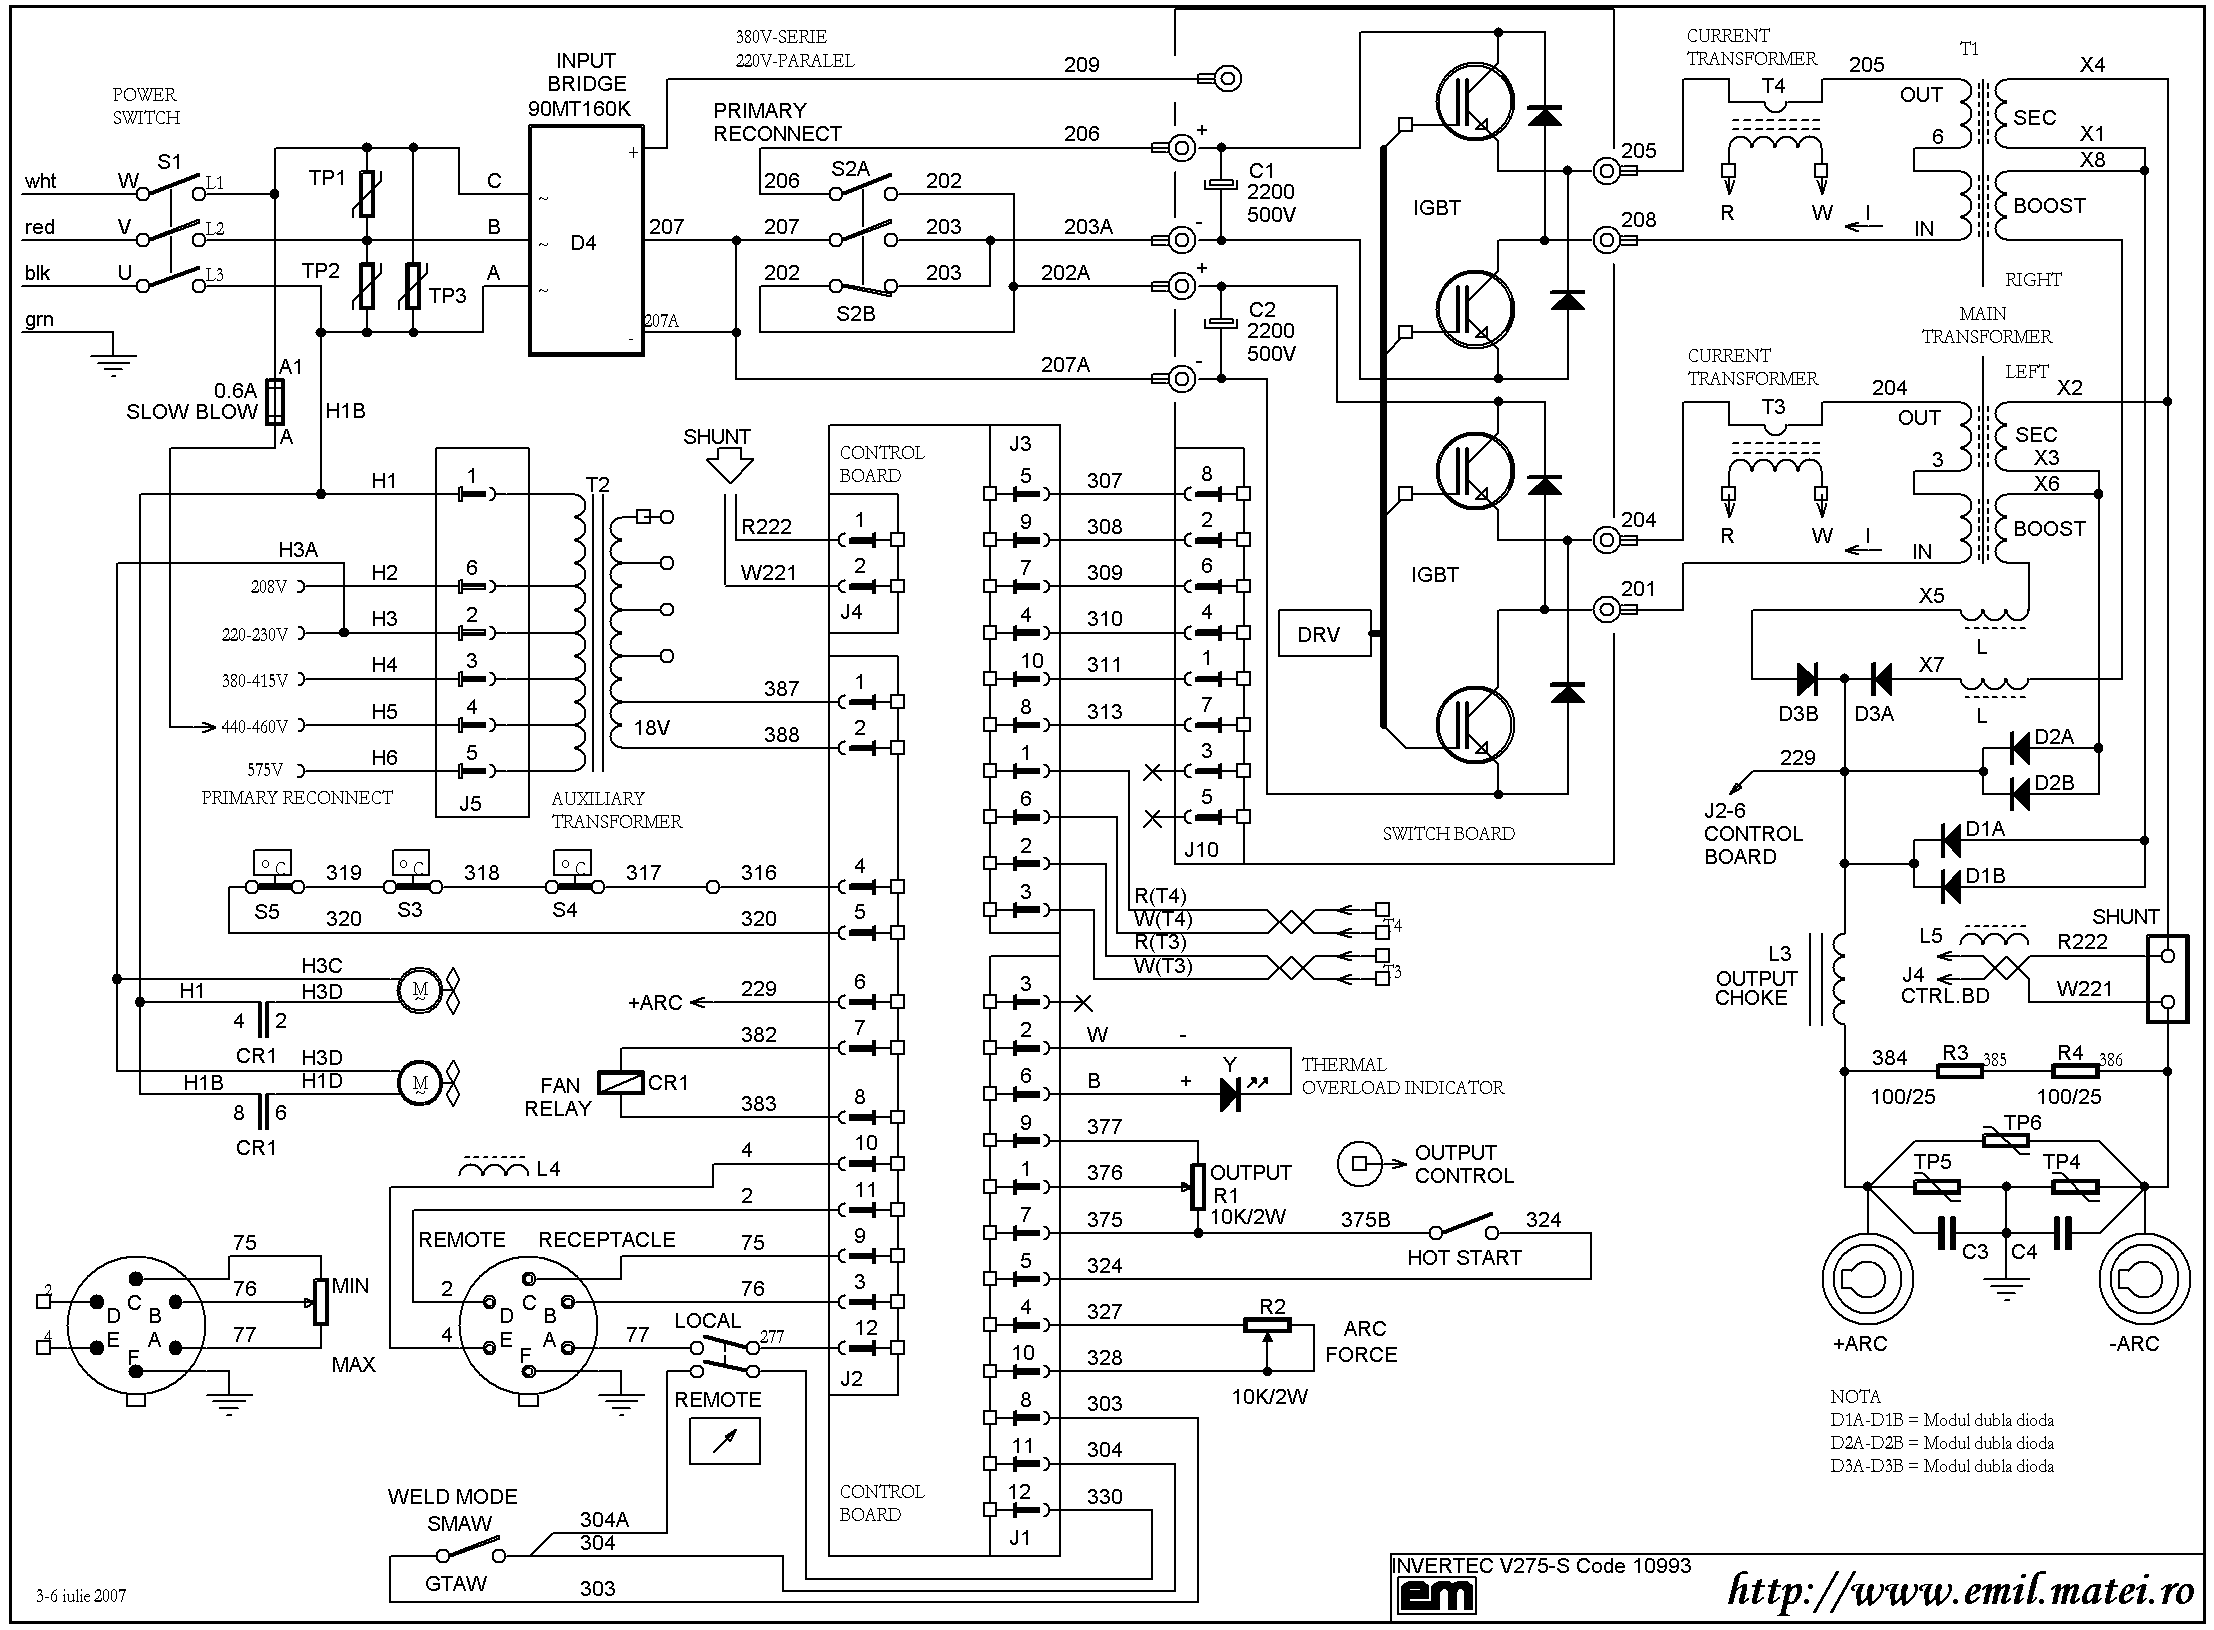 Welder Generator Wiring Diagram | Wiring Diagram on pto wiring diagram, isolator wiring diagram, generator head exploded view, generator head capacitor, rc brushless motor wiring diagram, generator head cover, generator head operation, star wiring diagram, transfer switches wiring diagram, alternator head wiring diagram, washer wiring diagram, lifan generators wiring diagram, portable generators wiring diagram, hour meter wiring diagram, electric winch wiring diagram, whole house generators wiring diagram, stihl chainsaw wiring diagram,